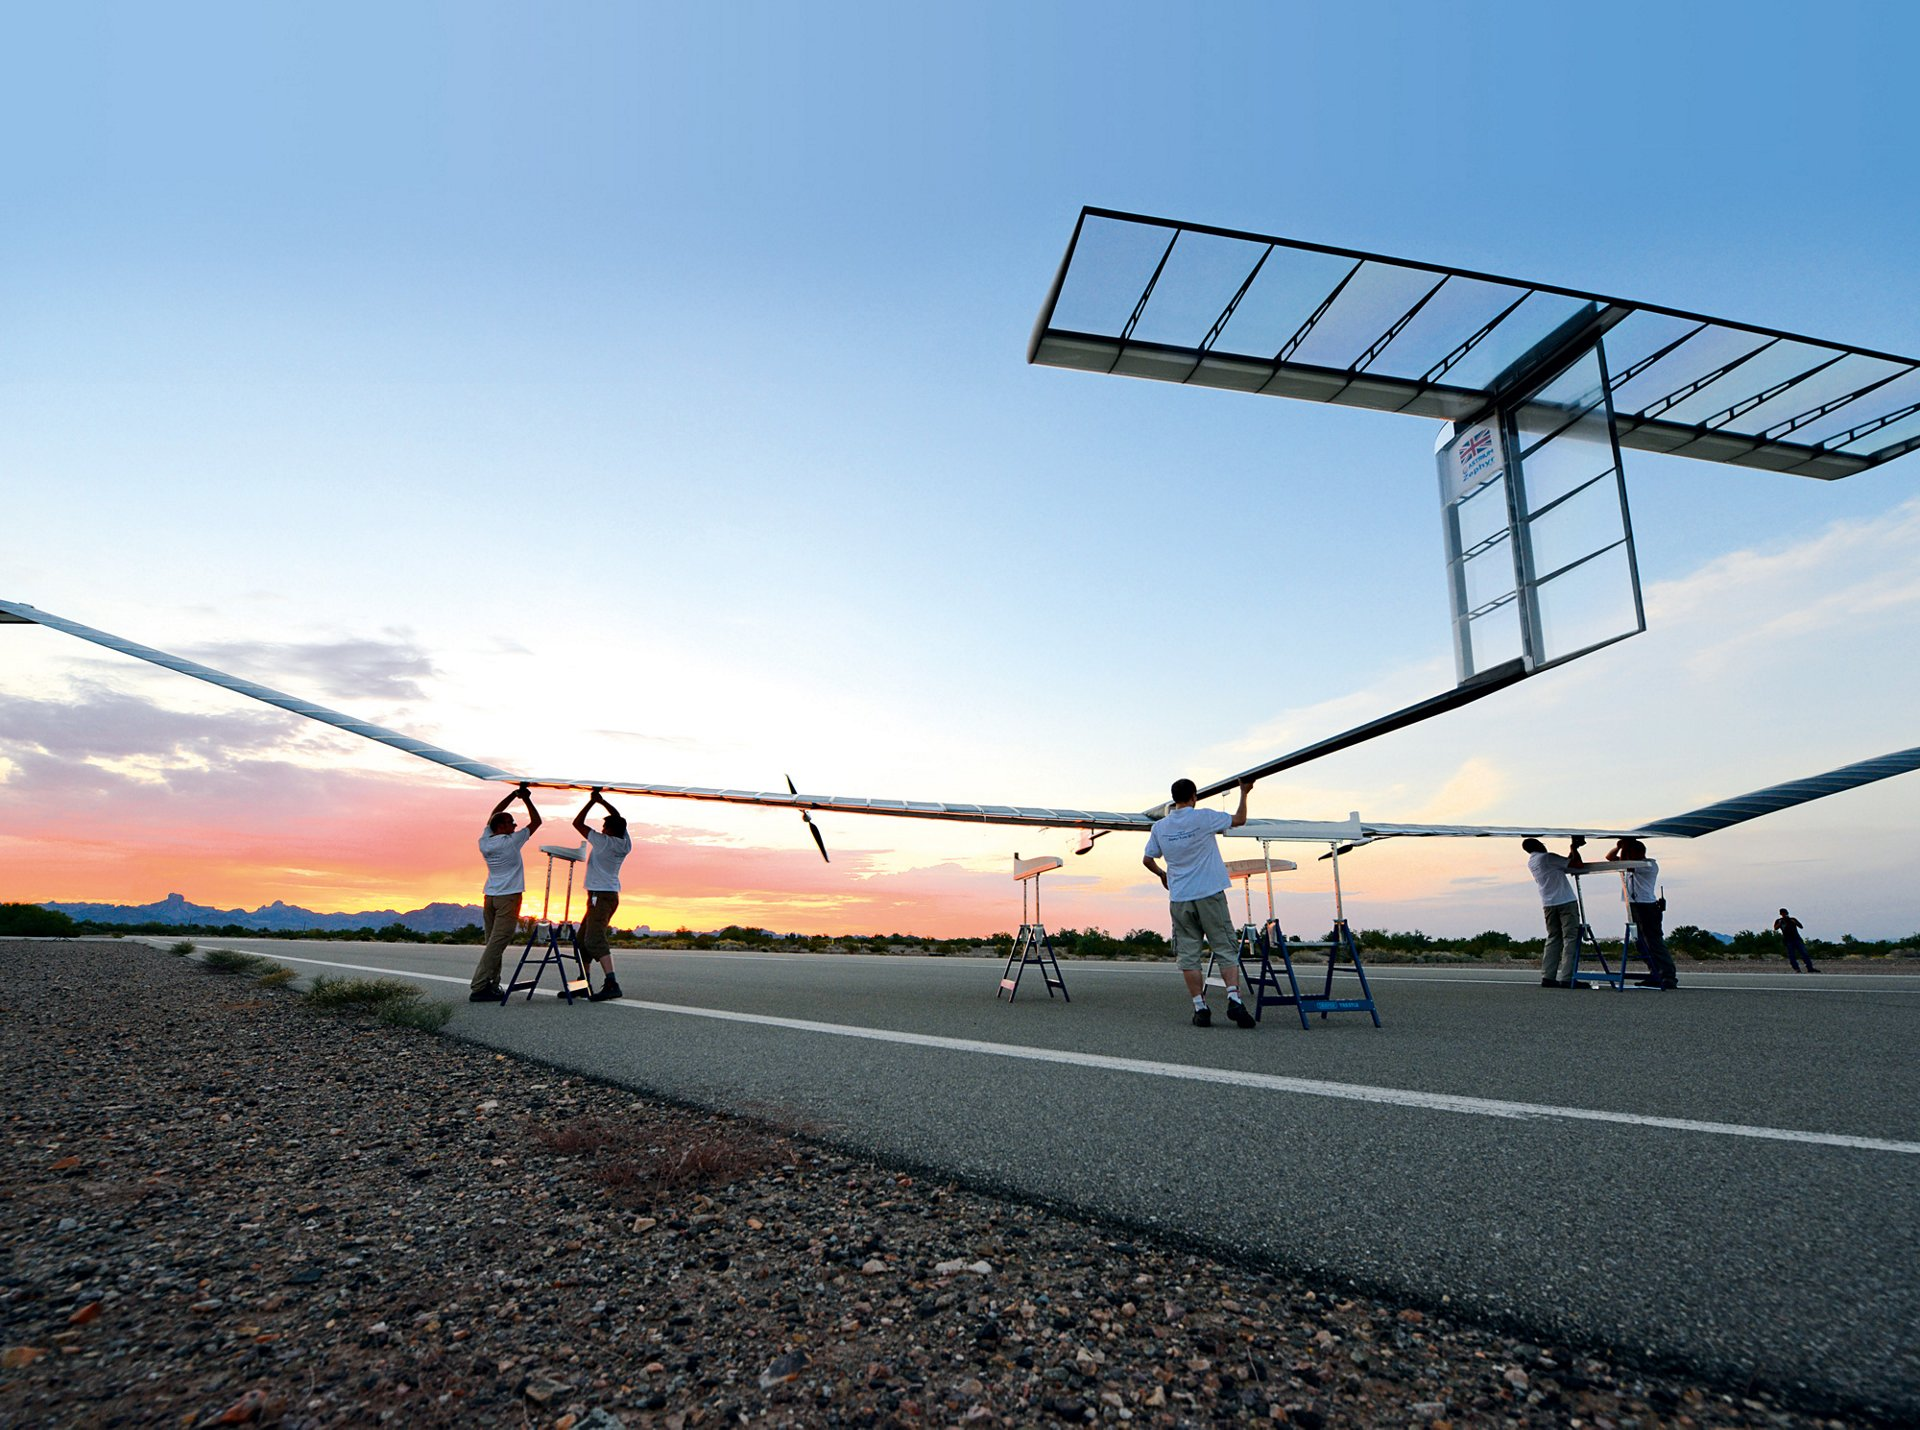 Airbus celebrates opening of the world's first Zephyr Solar High Altitude Pseudo-Satellite operating site